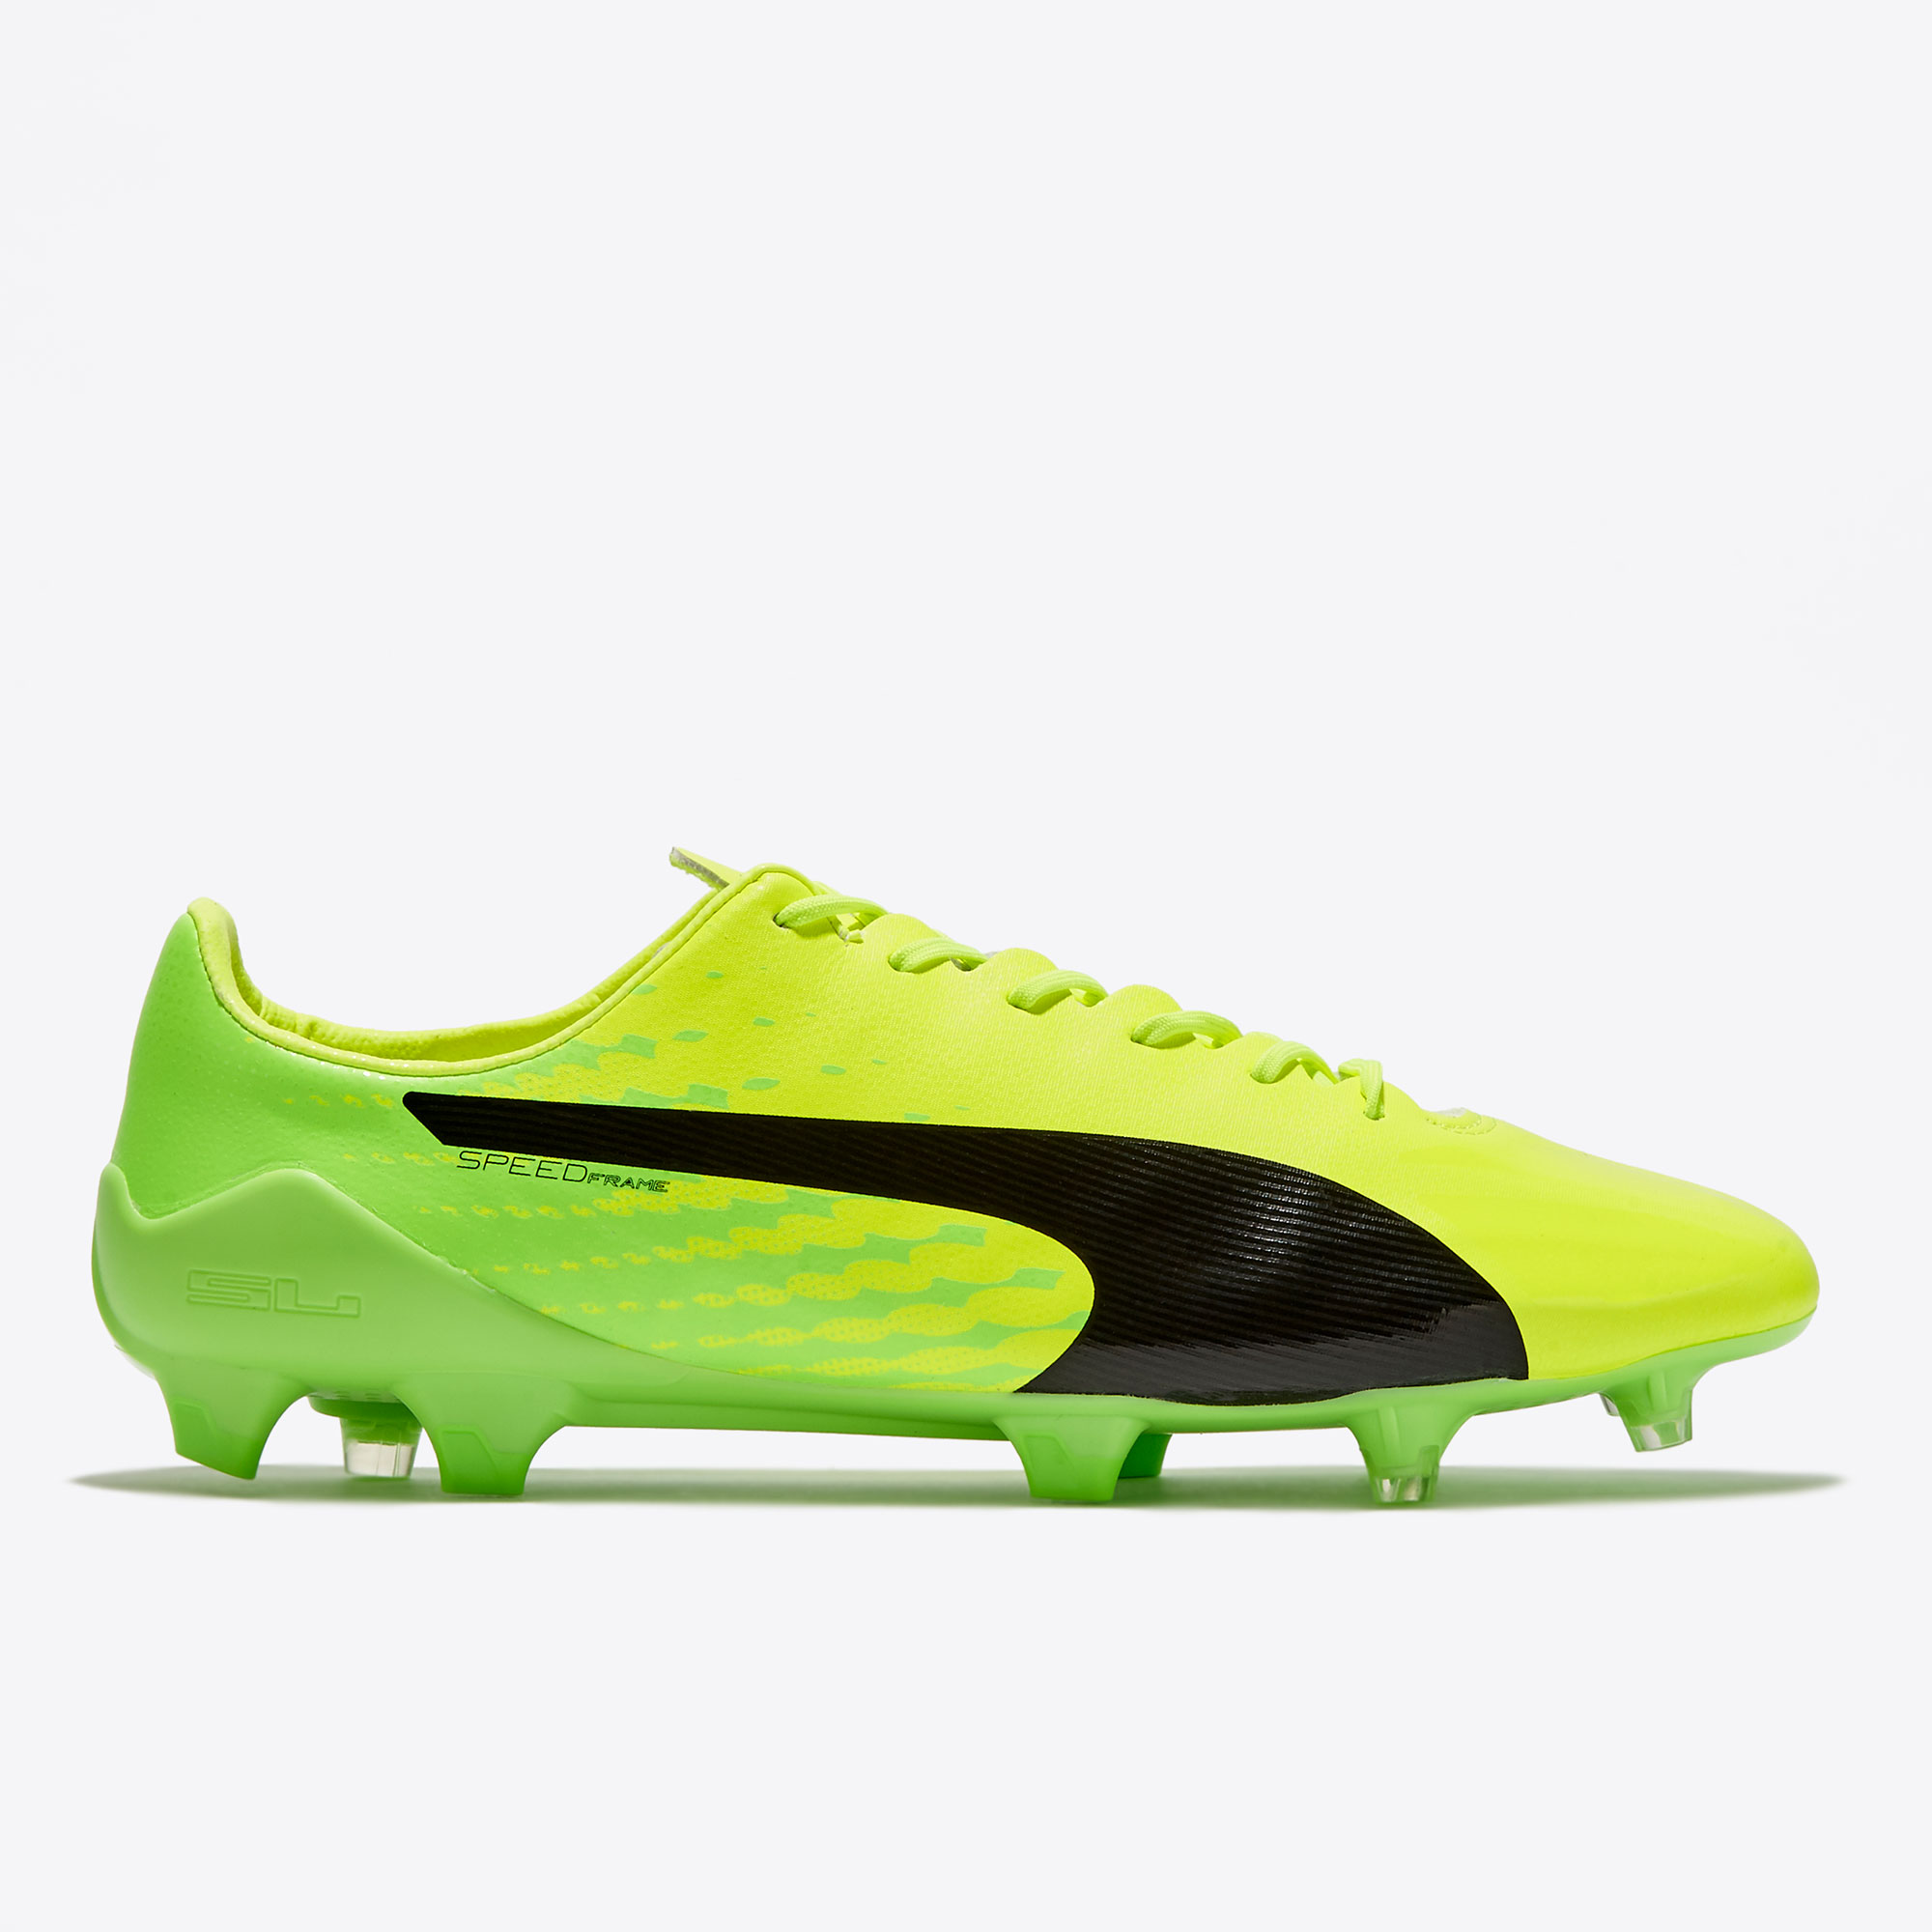 Puma evoSPEED 17.SL S FG Safety Yellow/Black